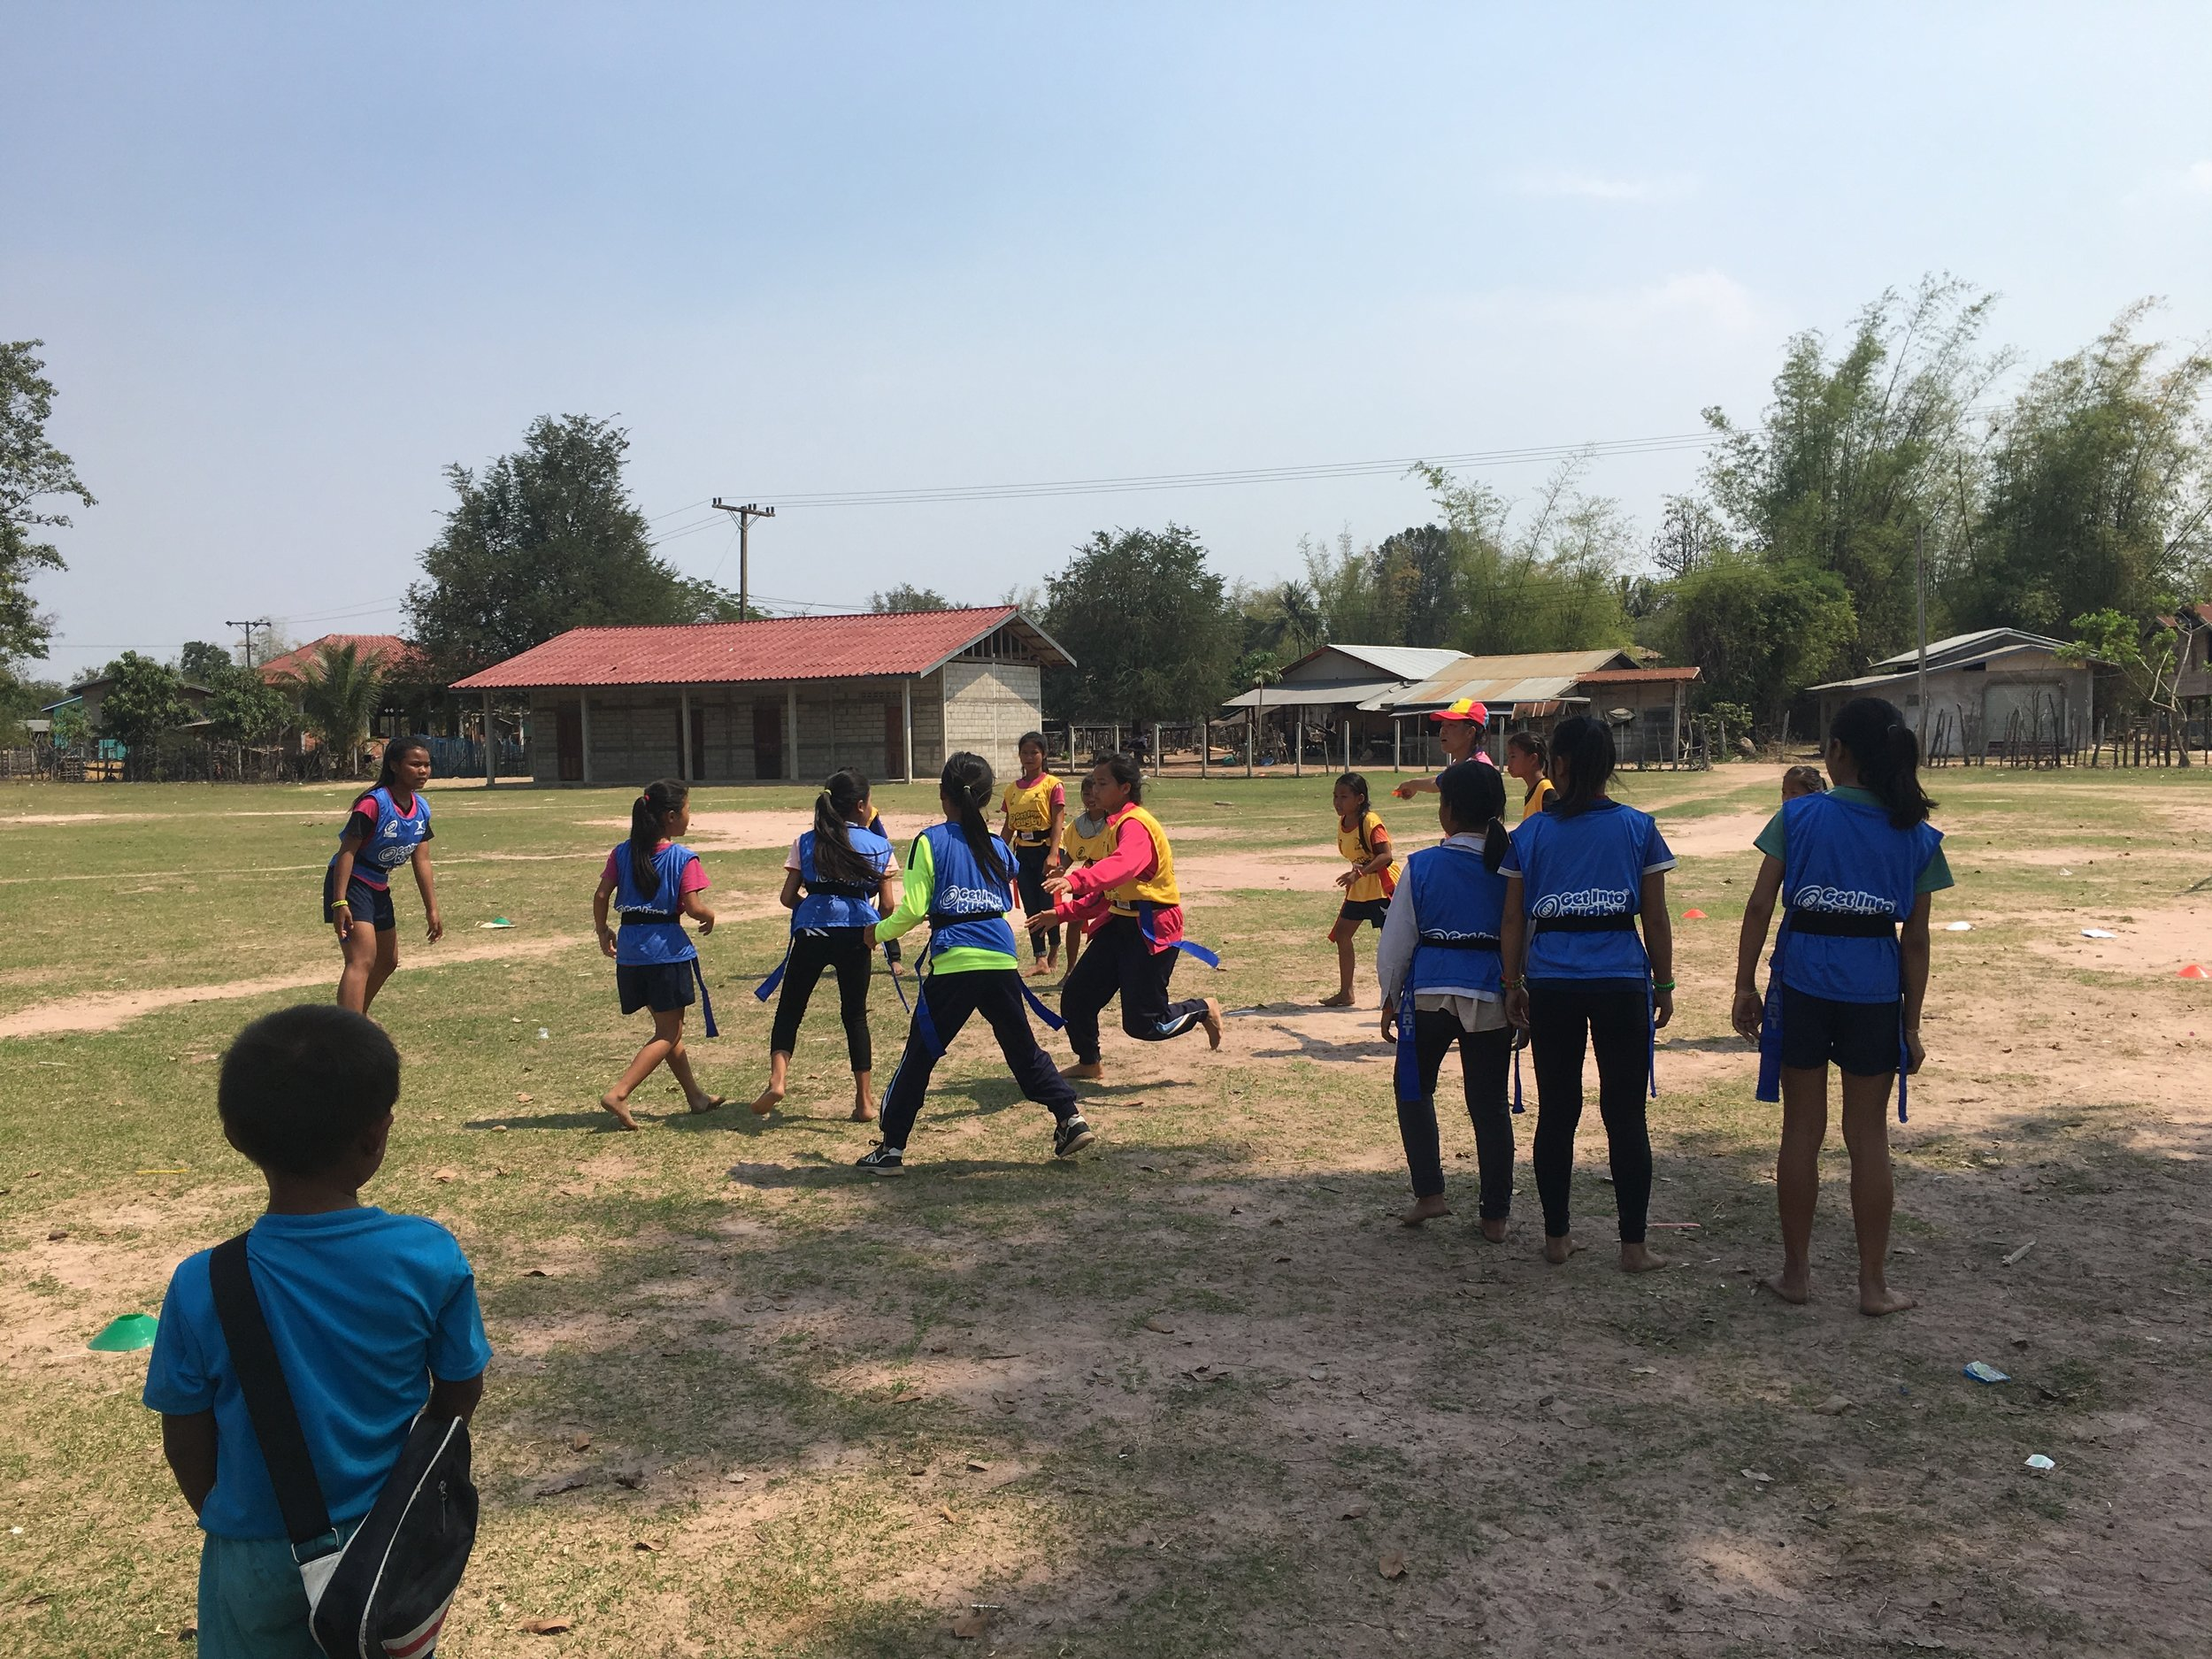 Lao Rugby coaches girls and trains coaches to teach dicipline and team work through sports.